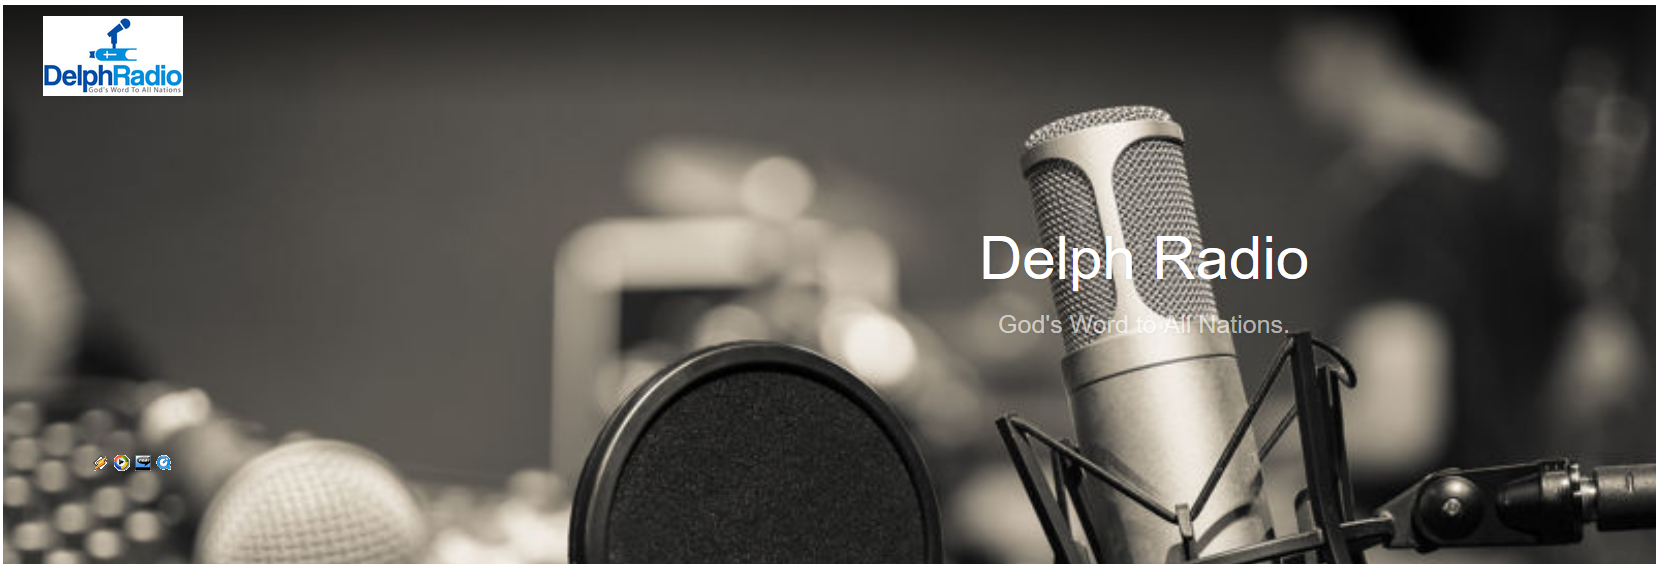 Delph Radio – Spreading God's Word to All Nations